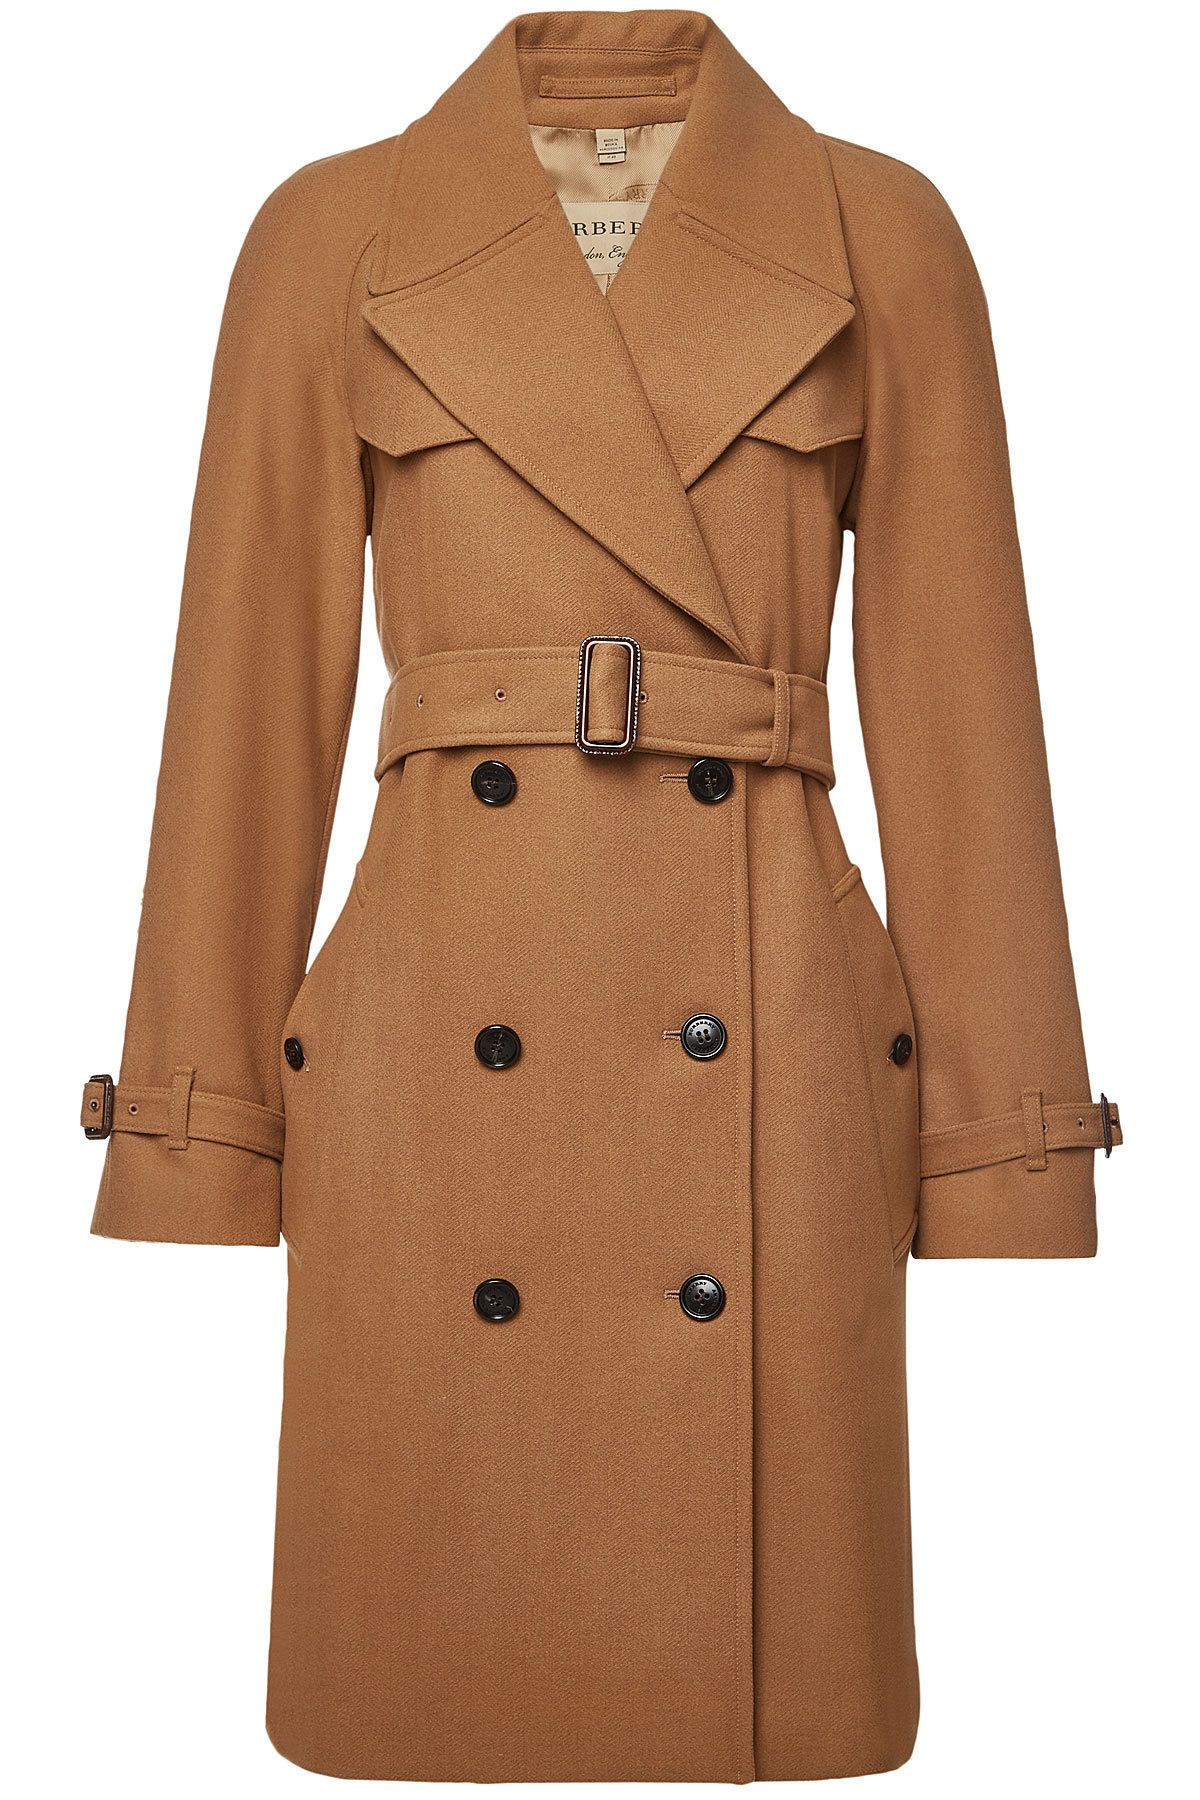 Burberry Cranston Coat With Wool And Cashmere On Stylebop Com Burberry Wool Coat Wool Coat Women Wool Trench Coat Women